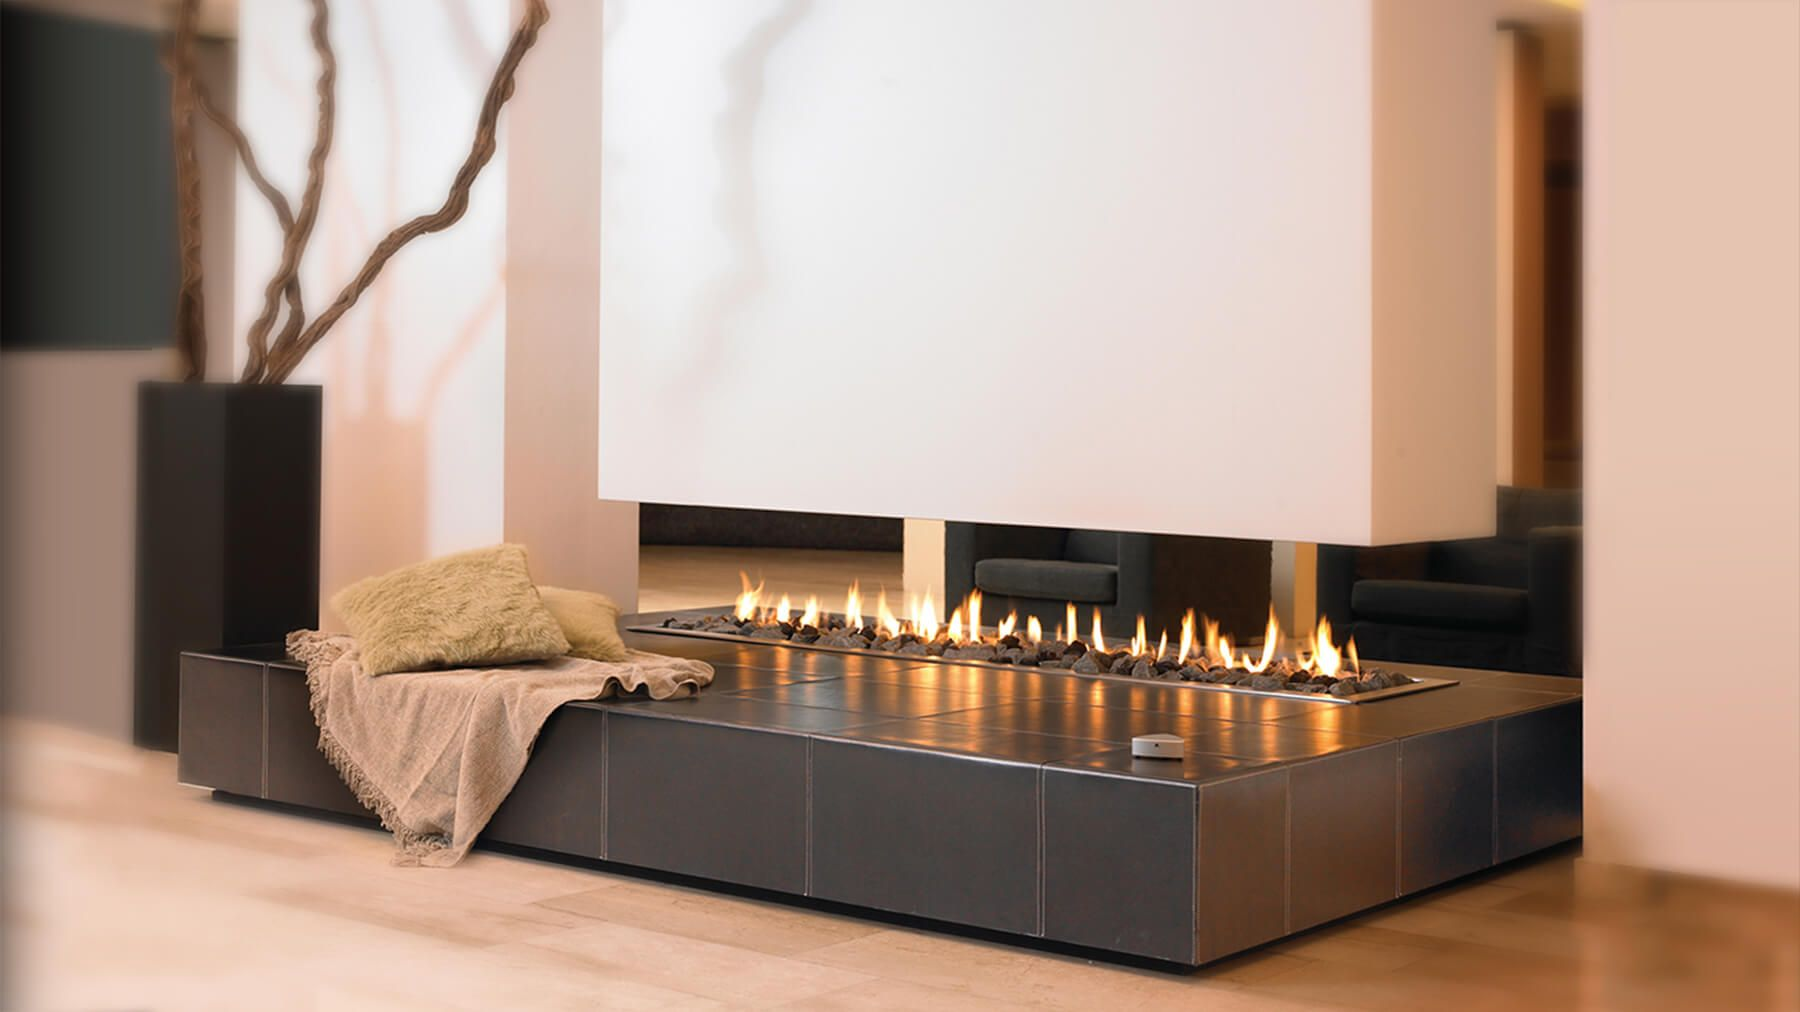 superb inserts to rc wall vent fireplaces designer cute modern imposing gas direct free fireplace